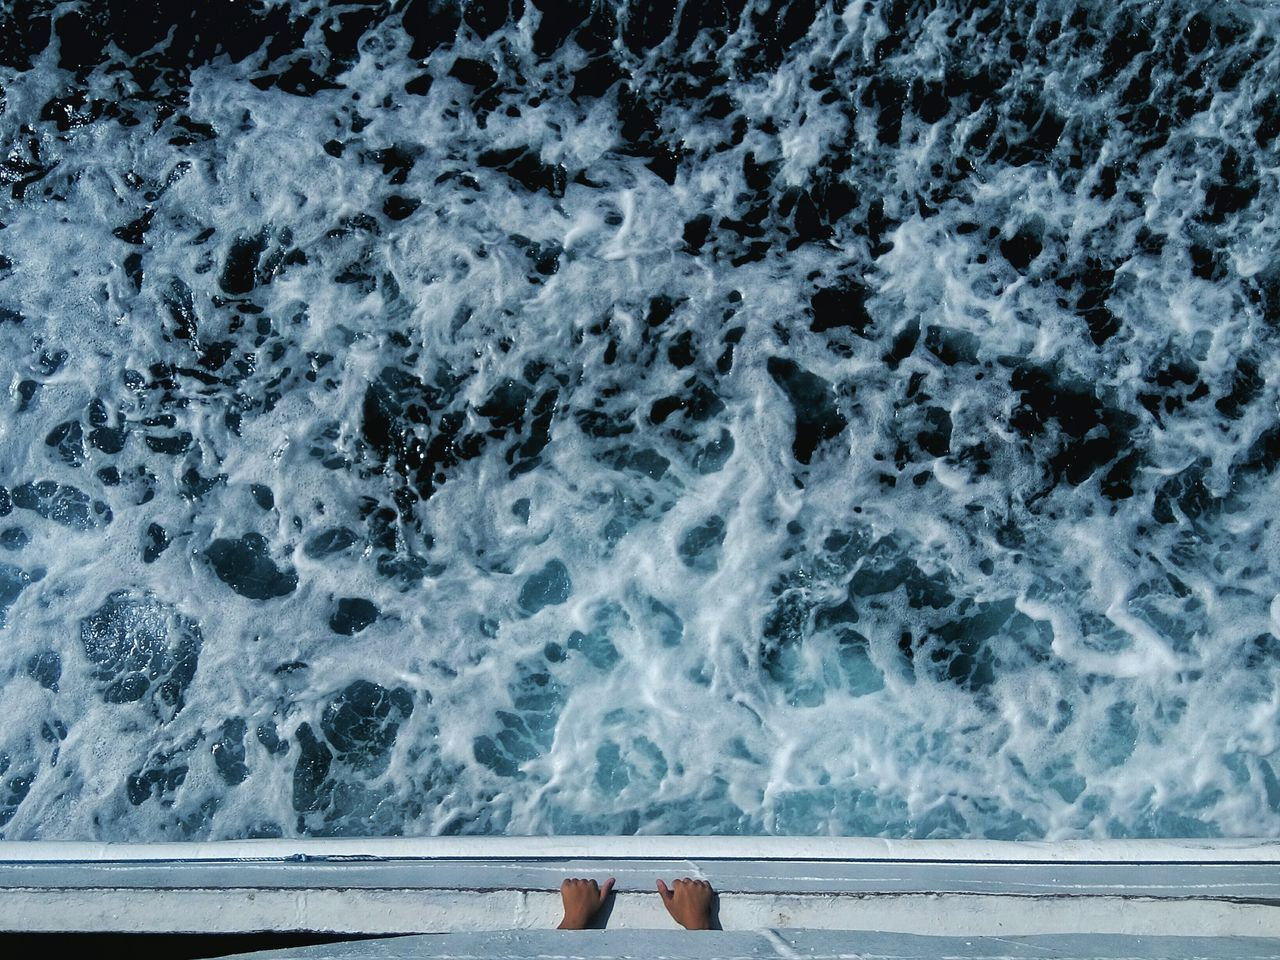 Directly above view of person in boat over sea